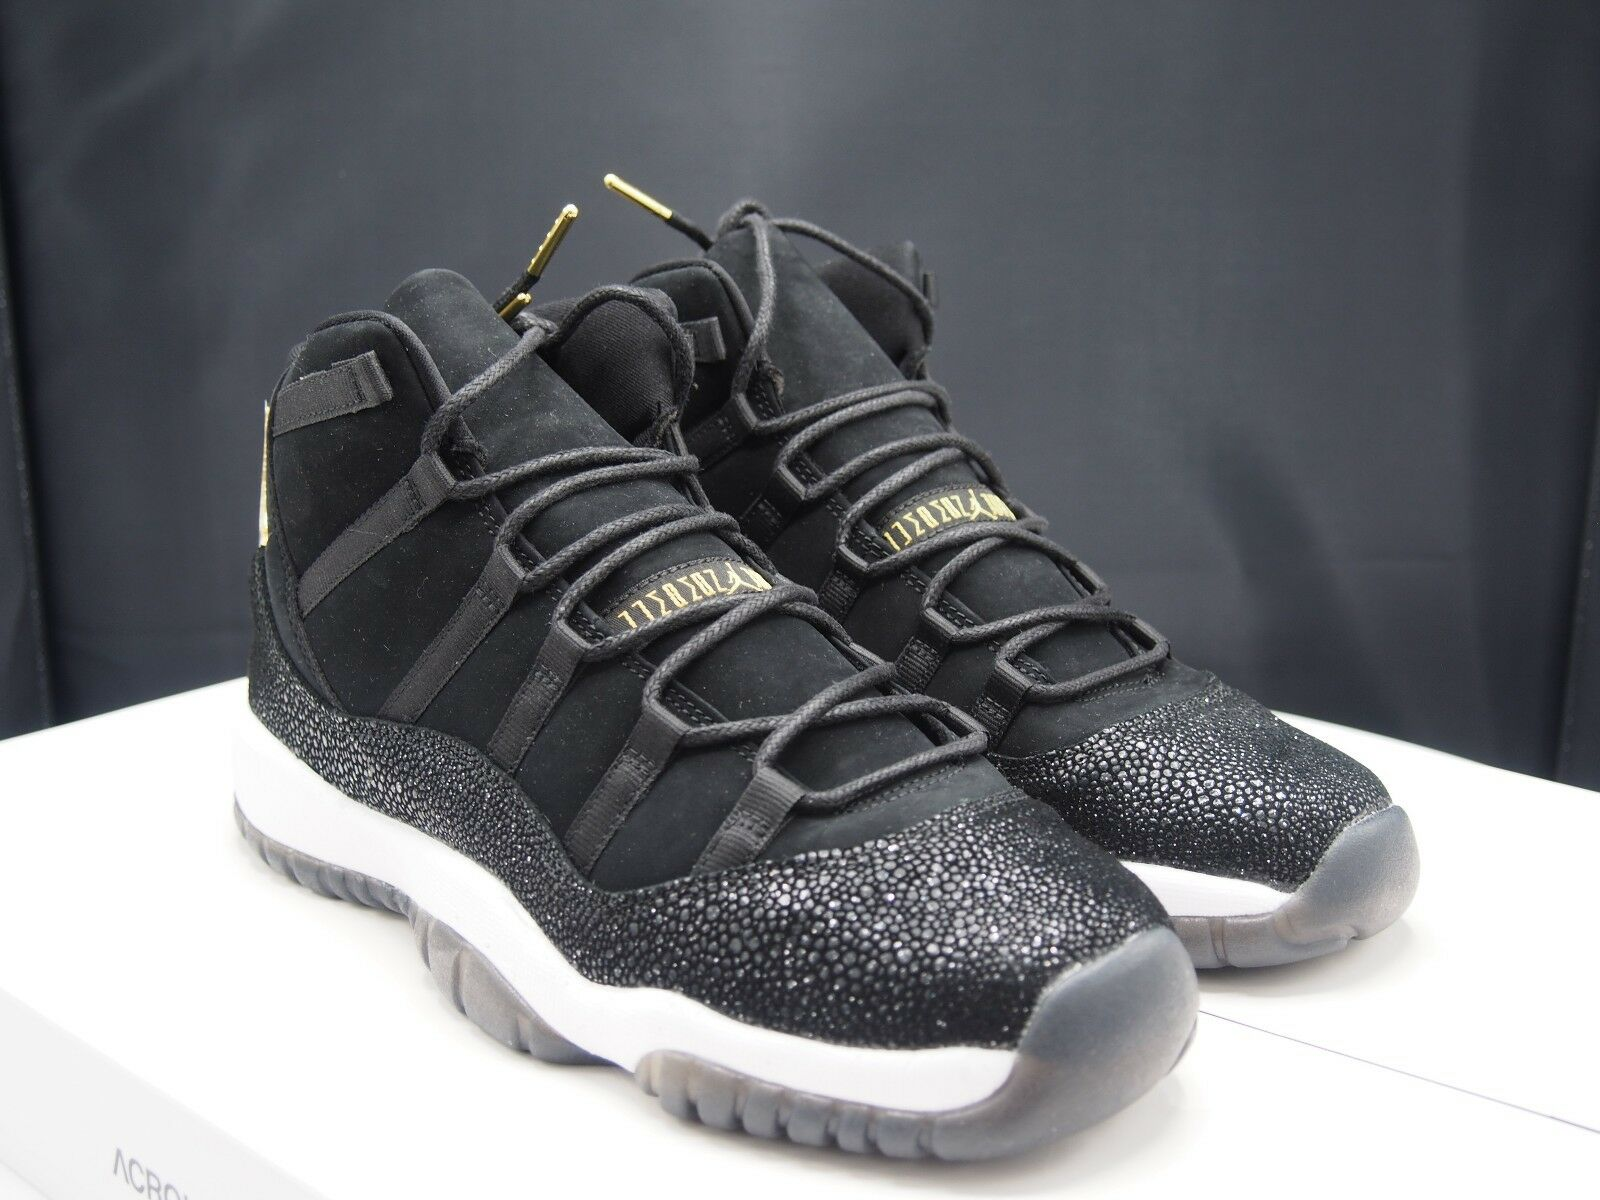 Nike Air Jordan XI 11 Retro